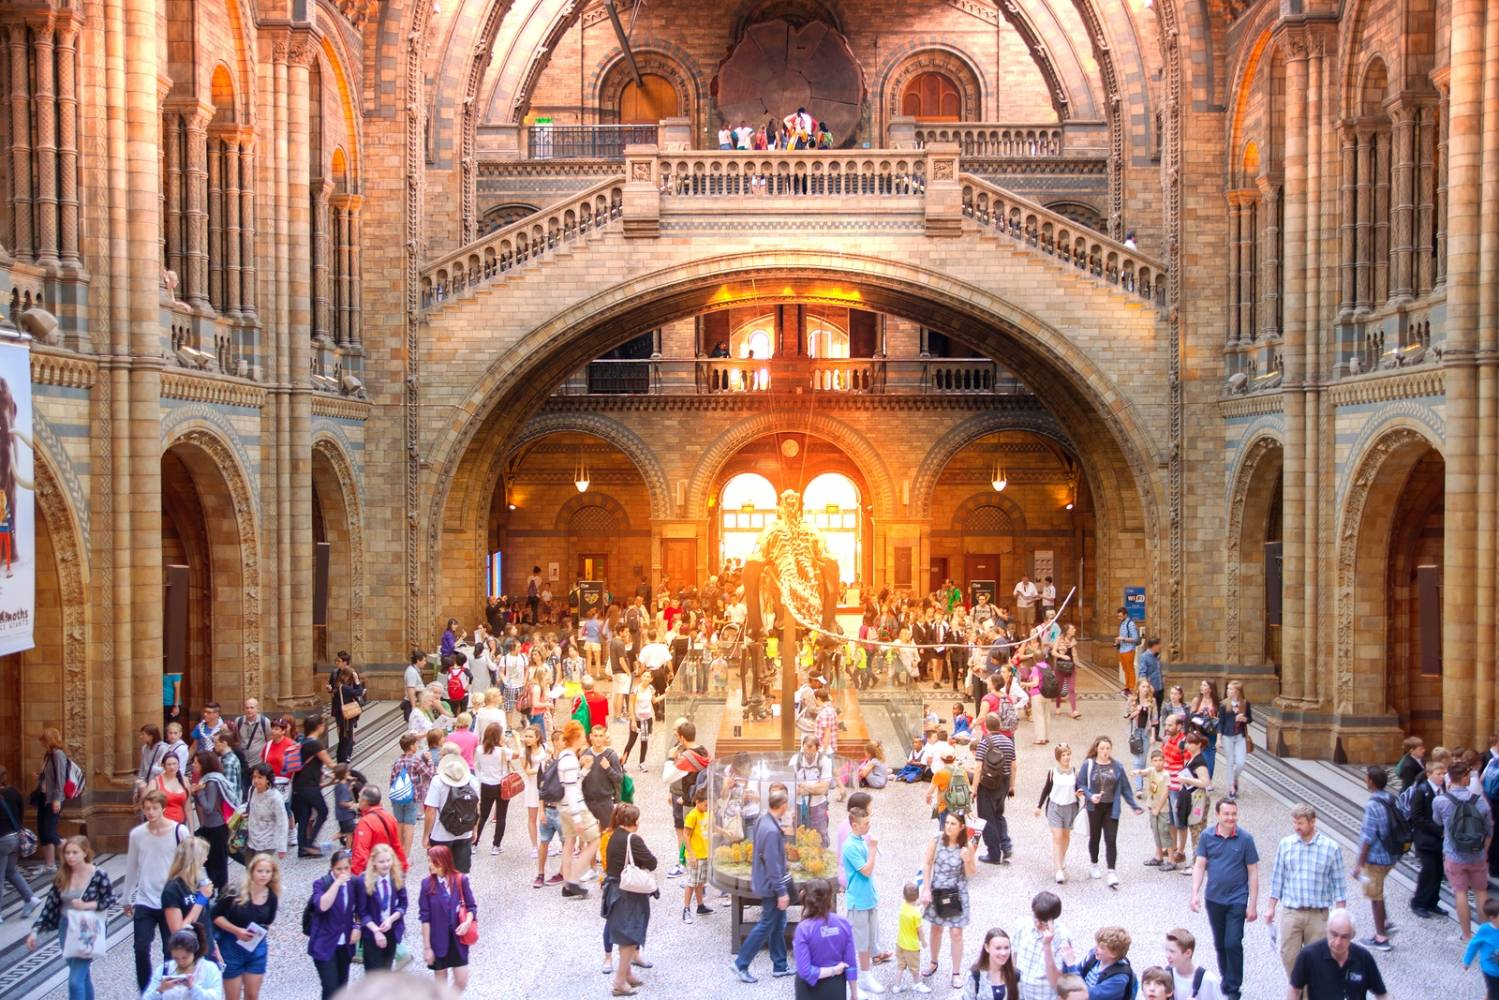 Image of the Natural History Museum